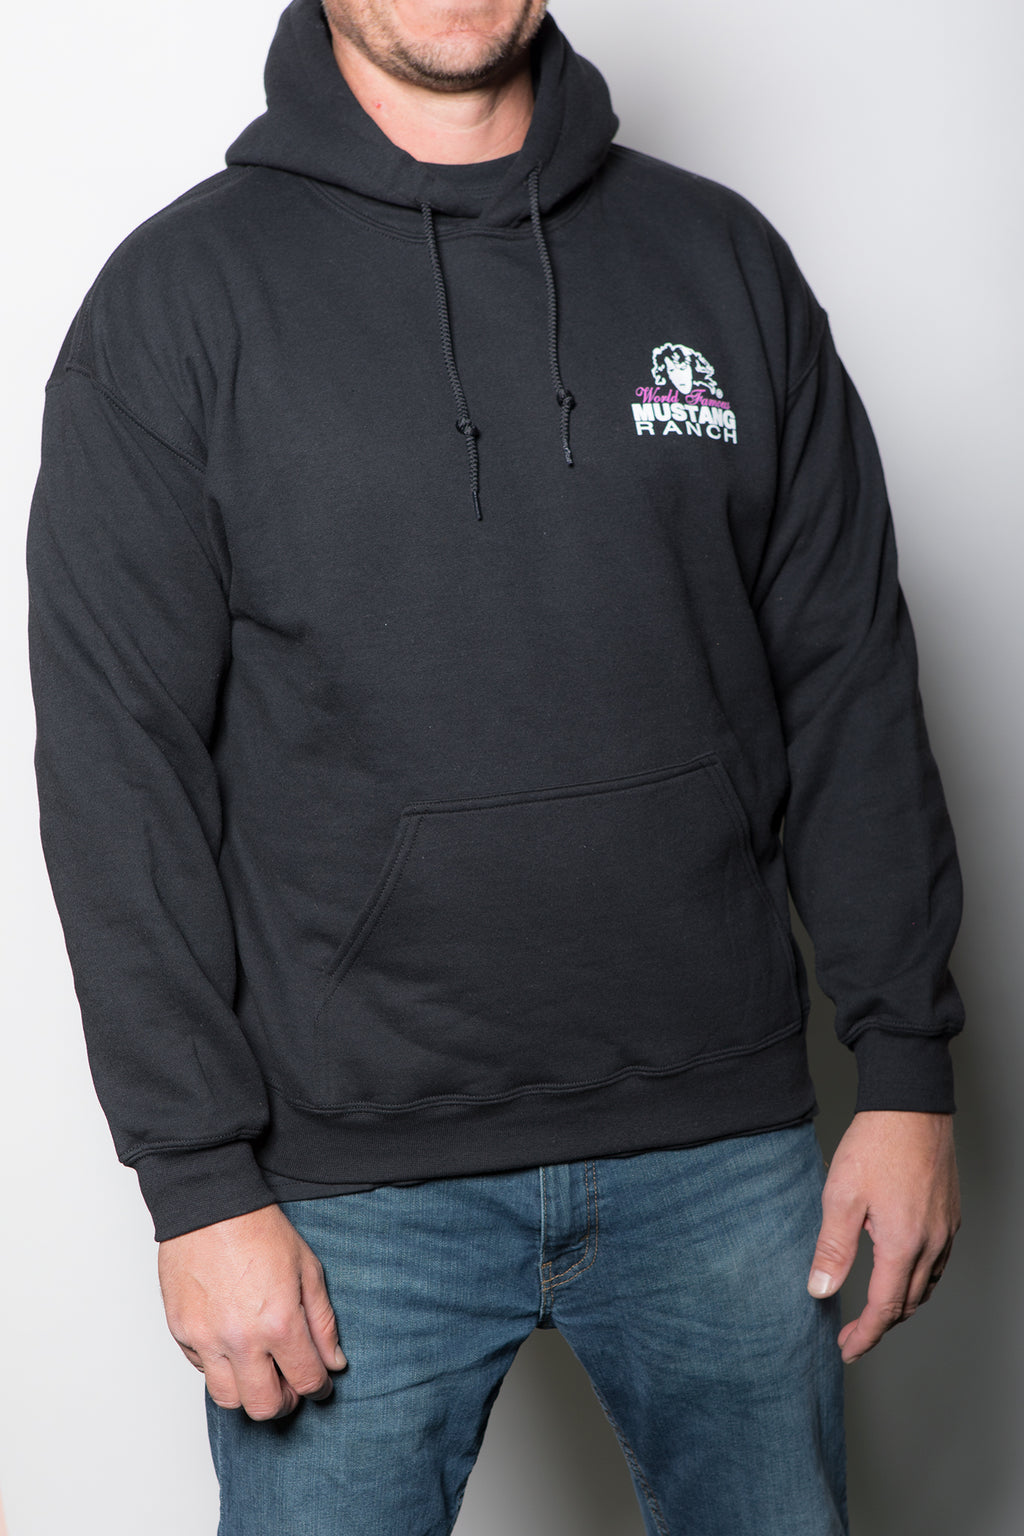 Unisex Hoodie with Mustang Ranch Logo